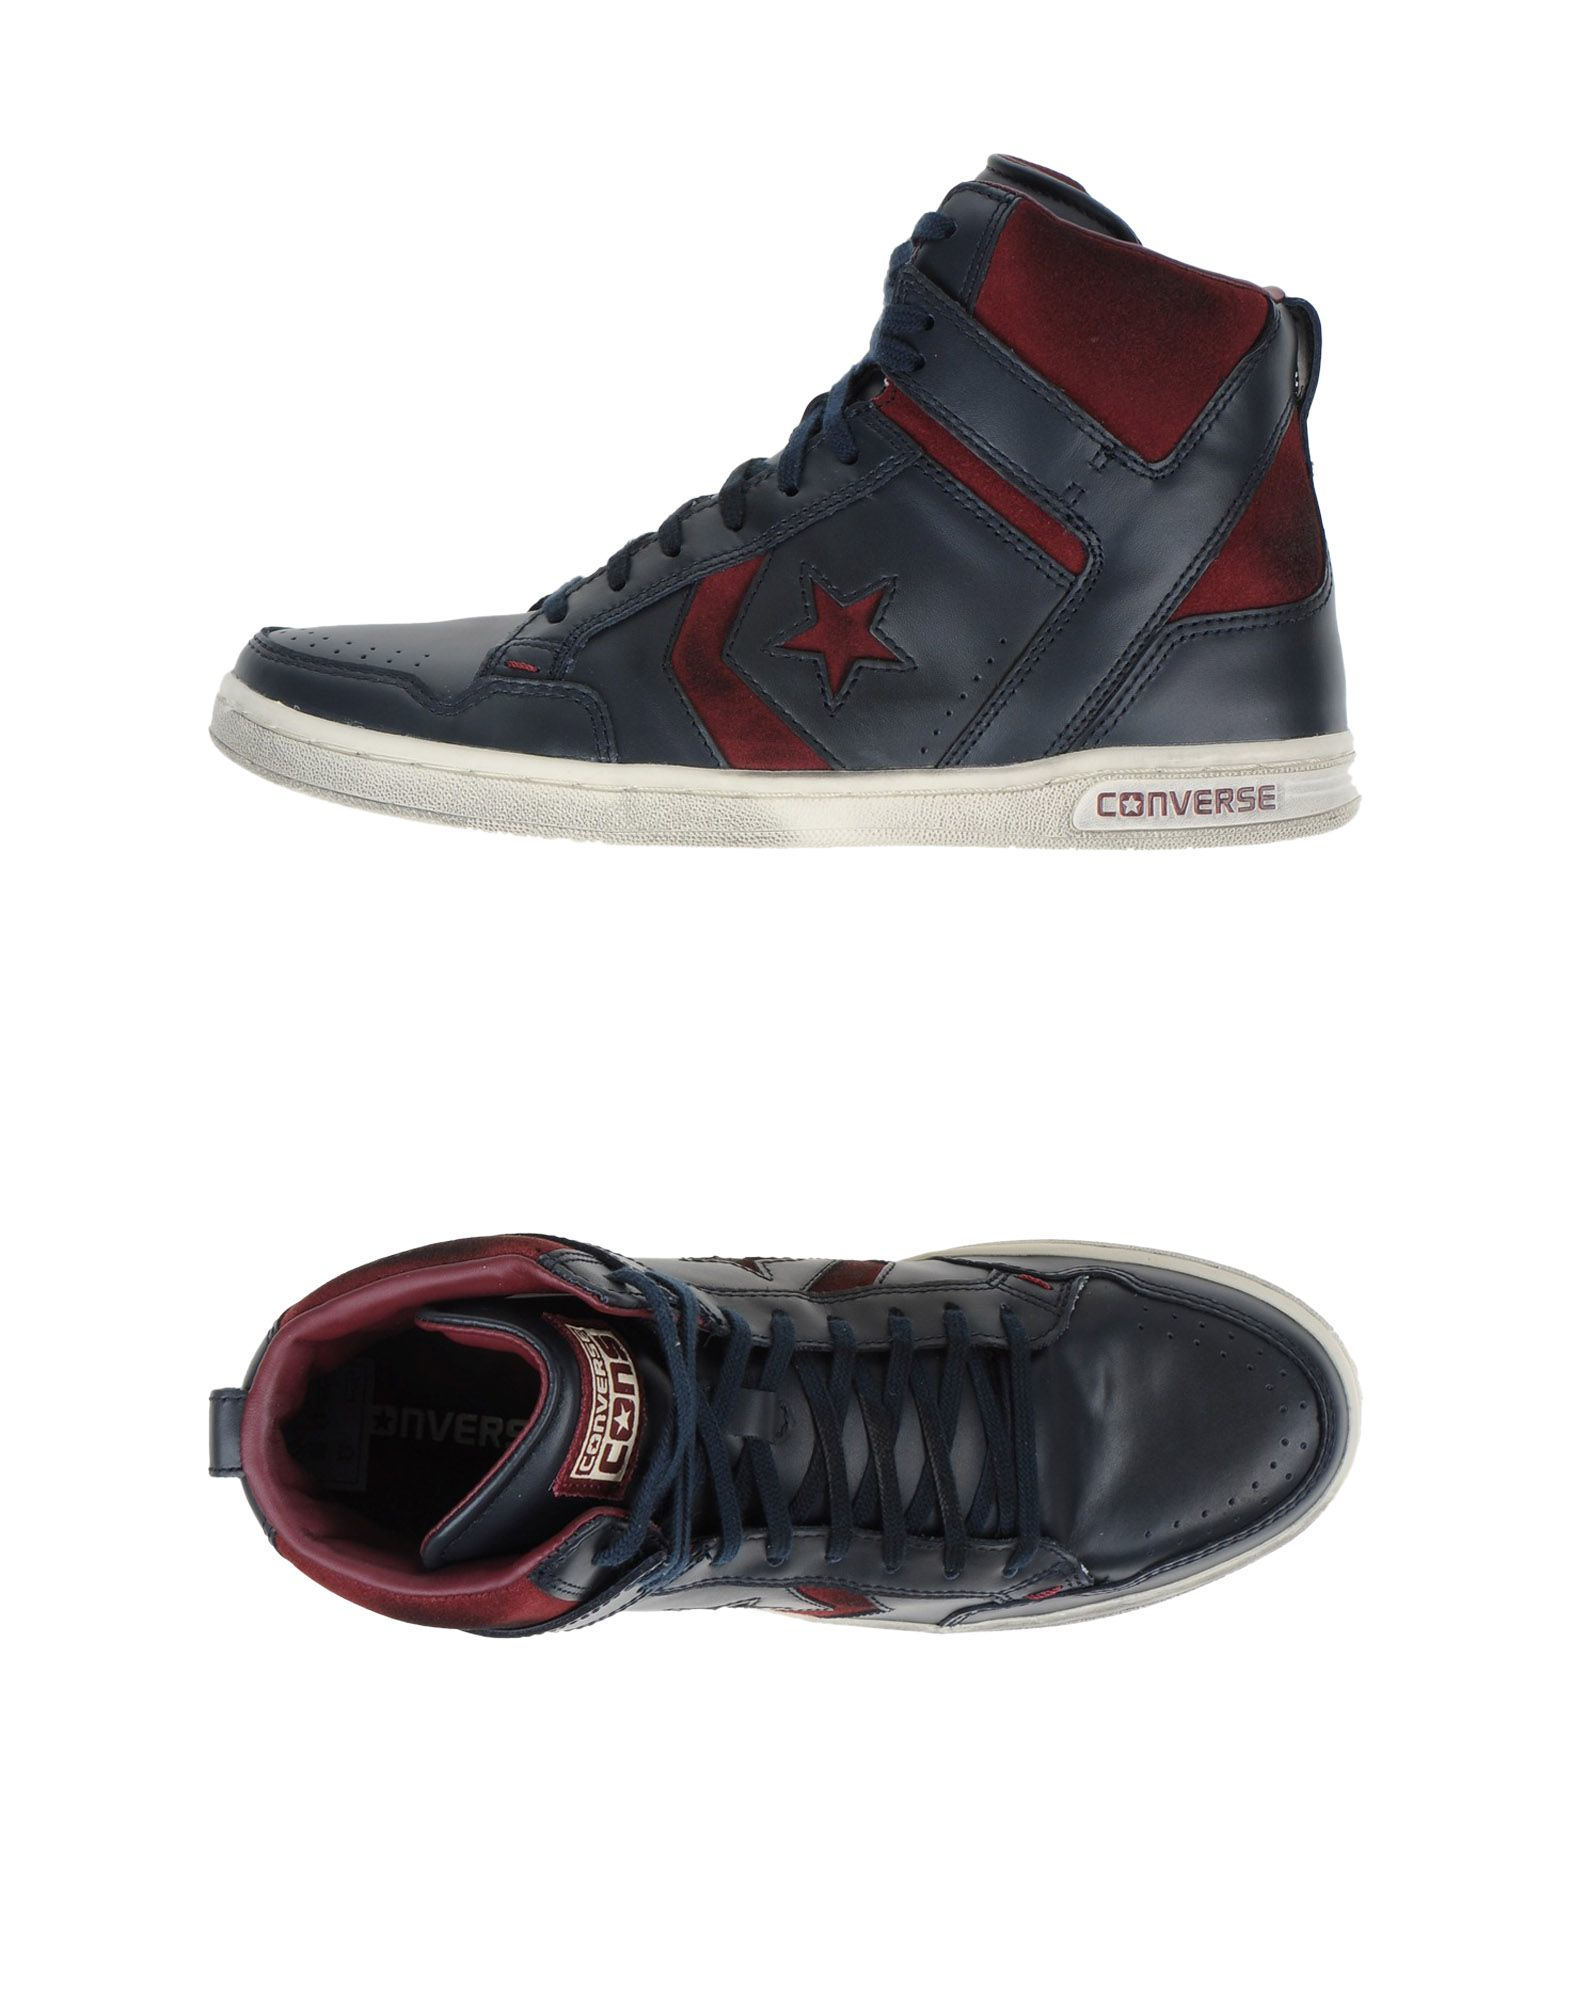 Tone Shoe Laces For Sneakers